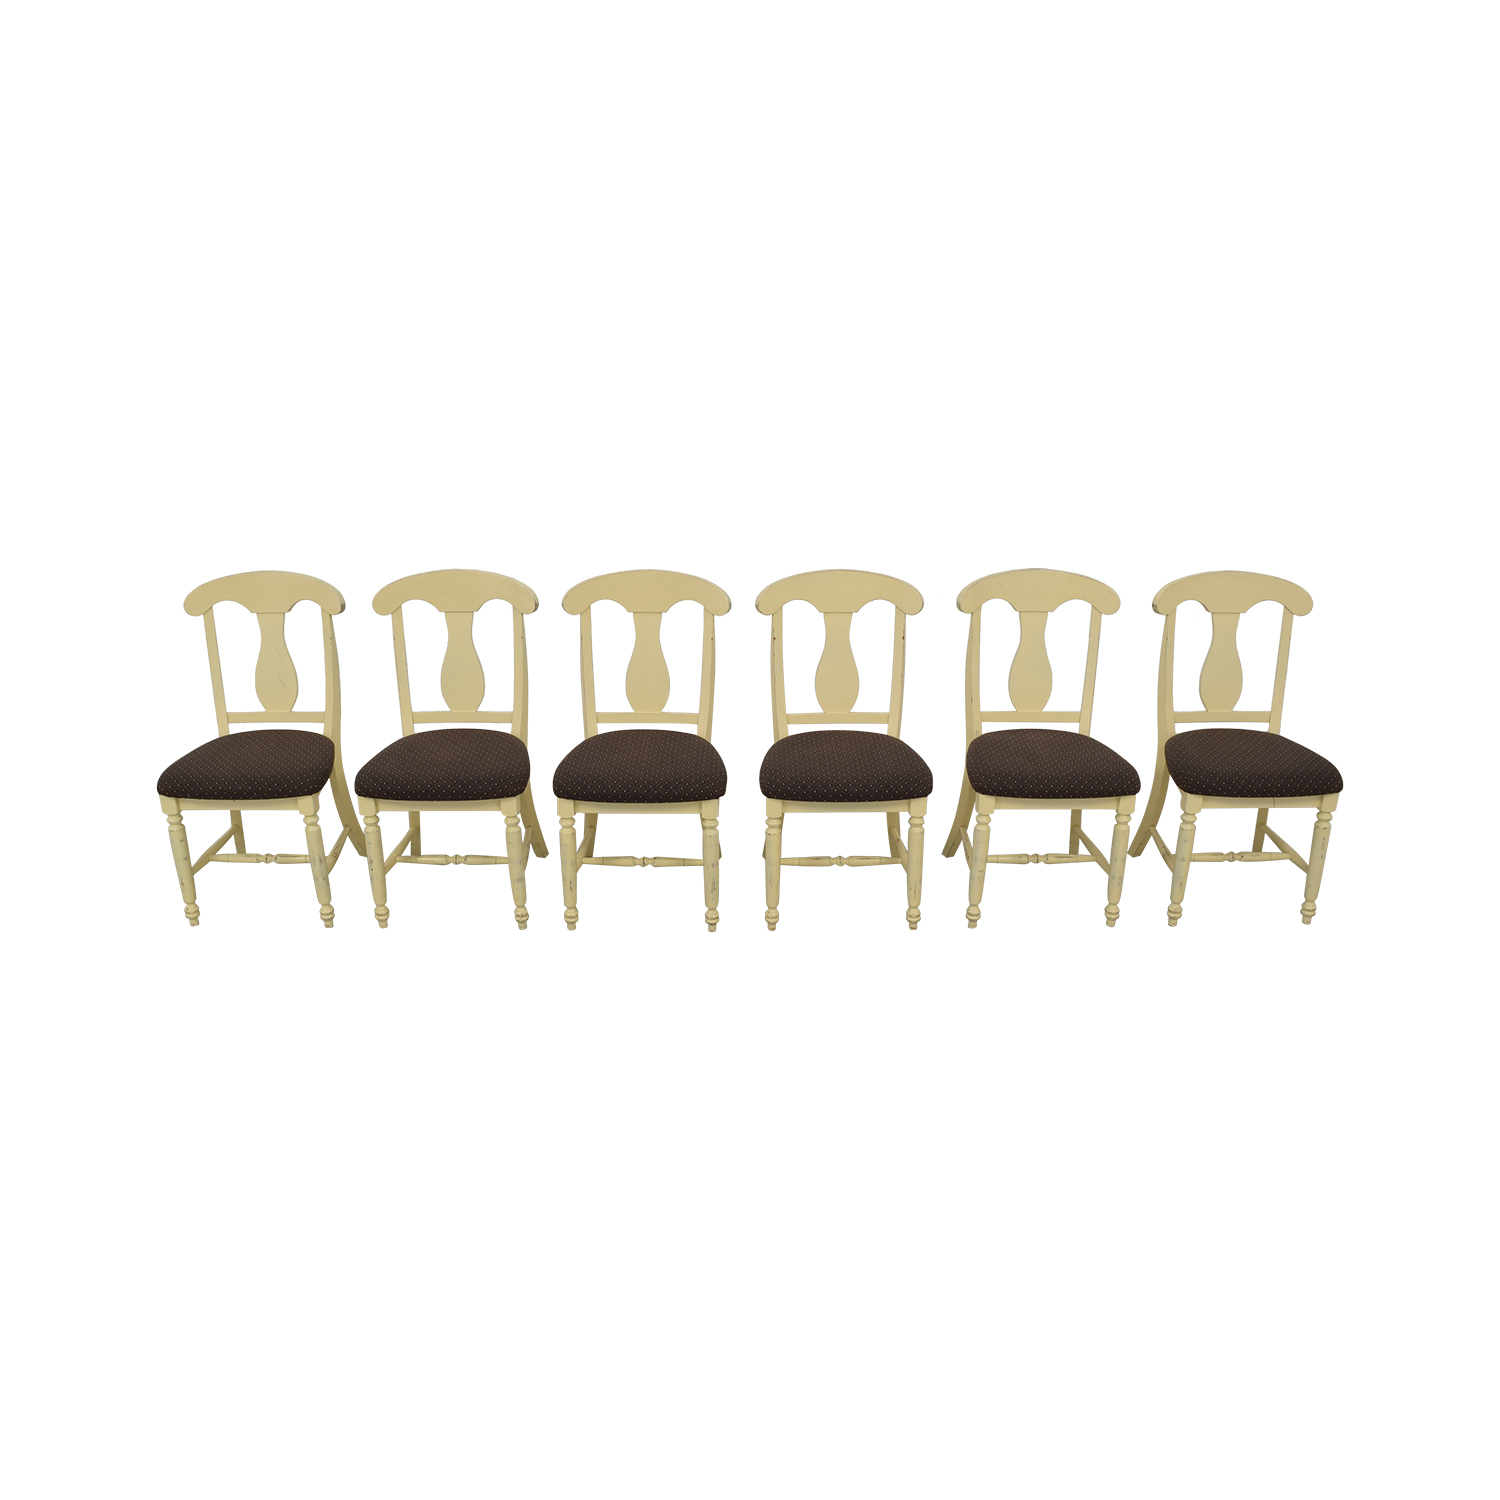 Canadel Furniture Upholstered Dining Chairs dimensions